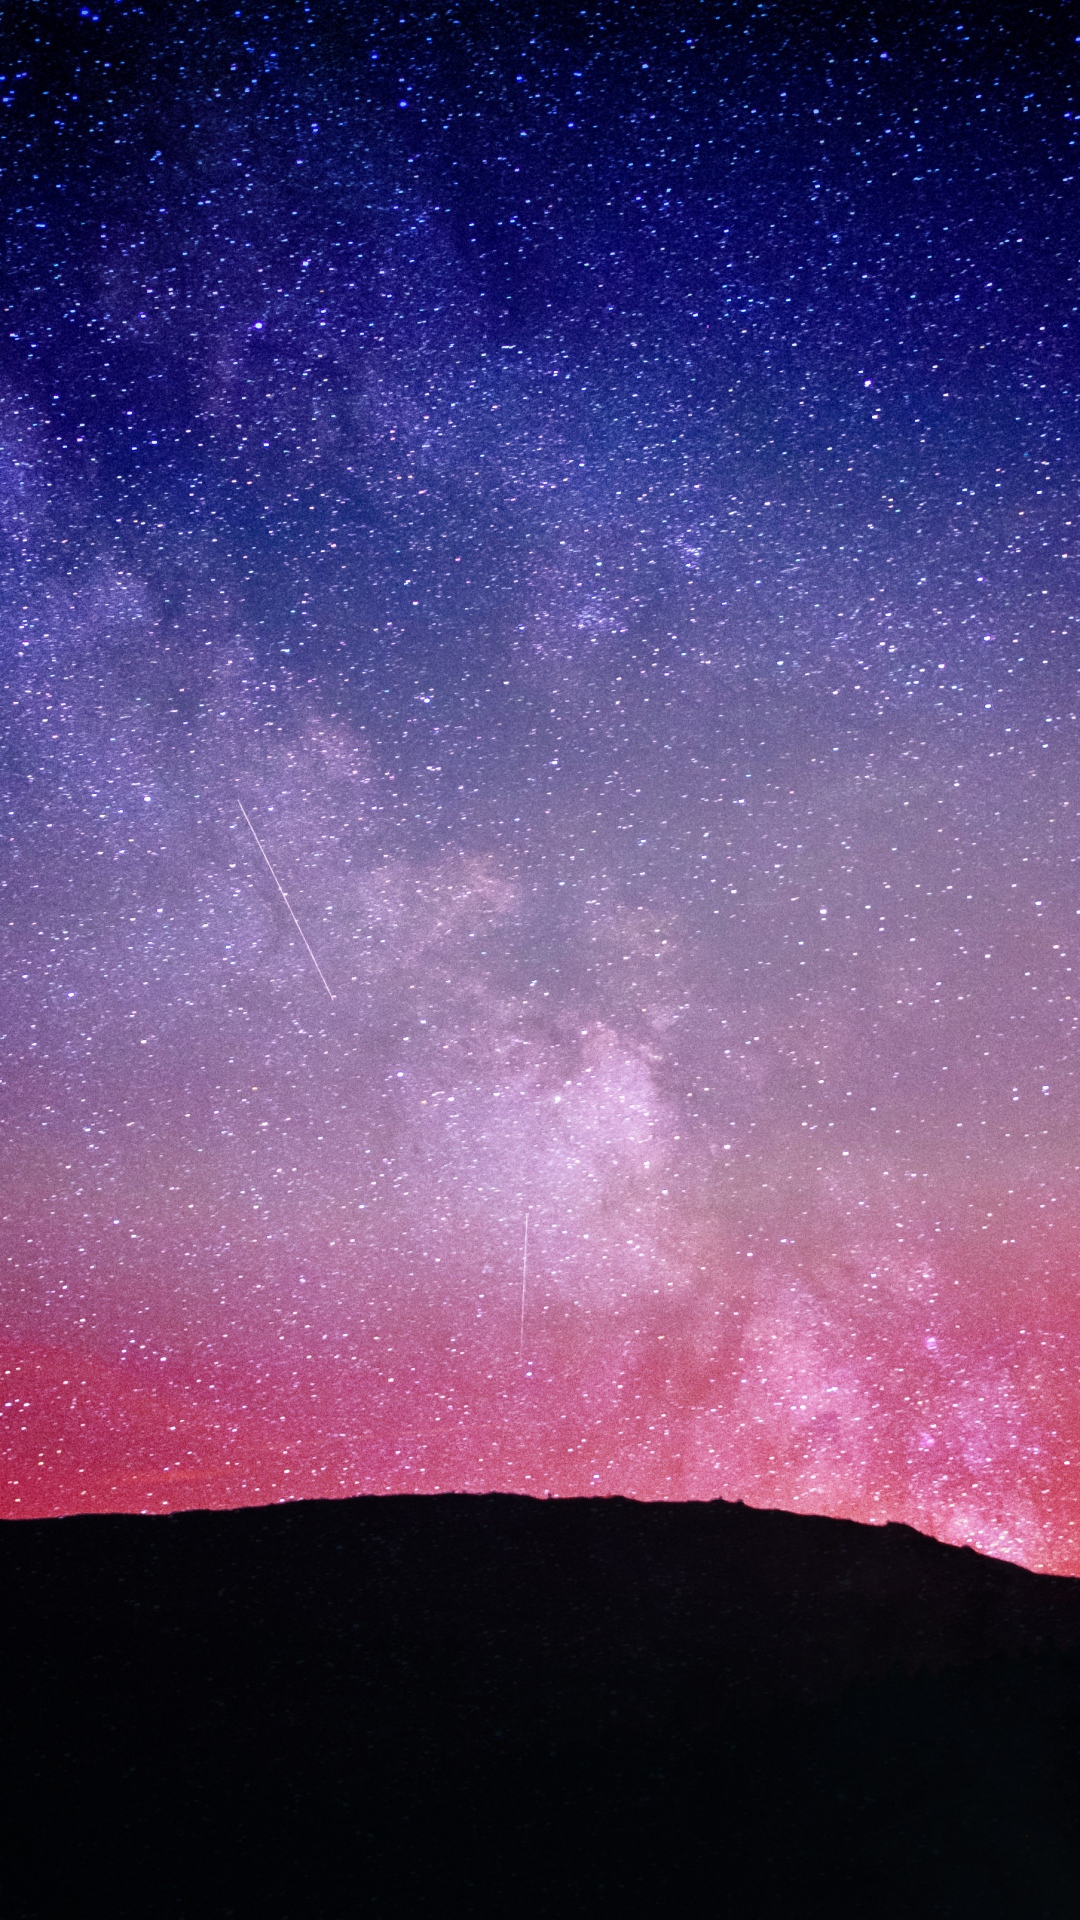 Iphone 6s Wallpaper Fall Starry Sky Wallpaper For Iphone X 8 7 6 Free Download